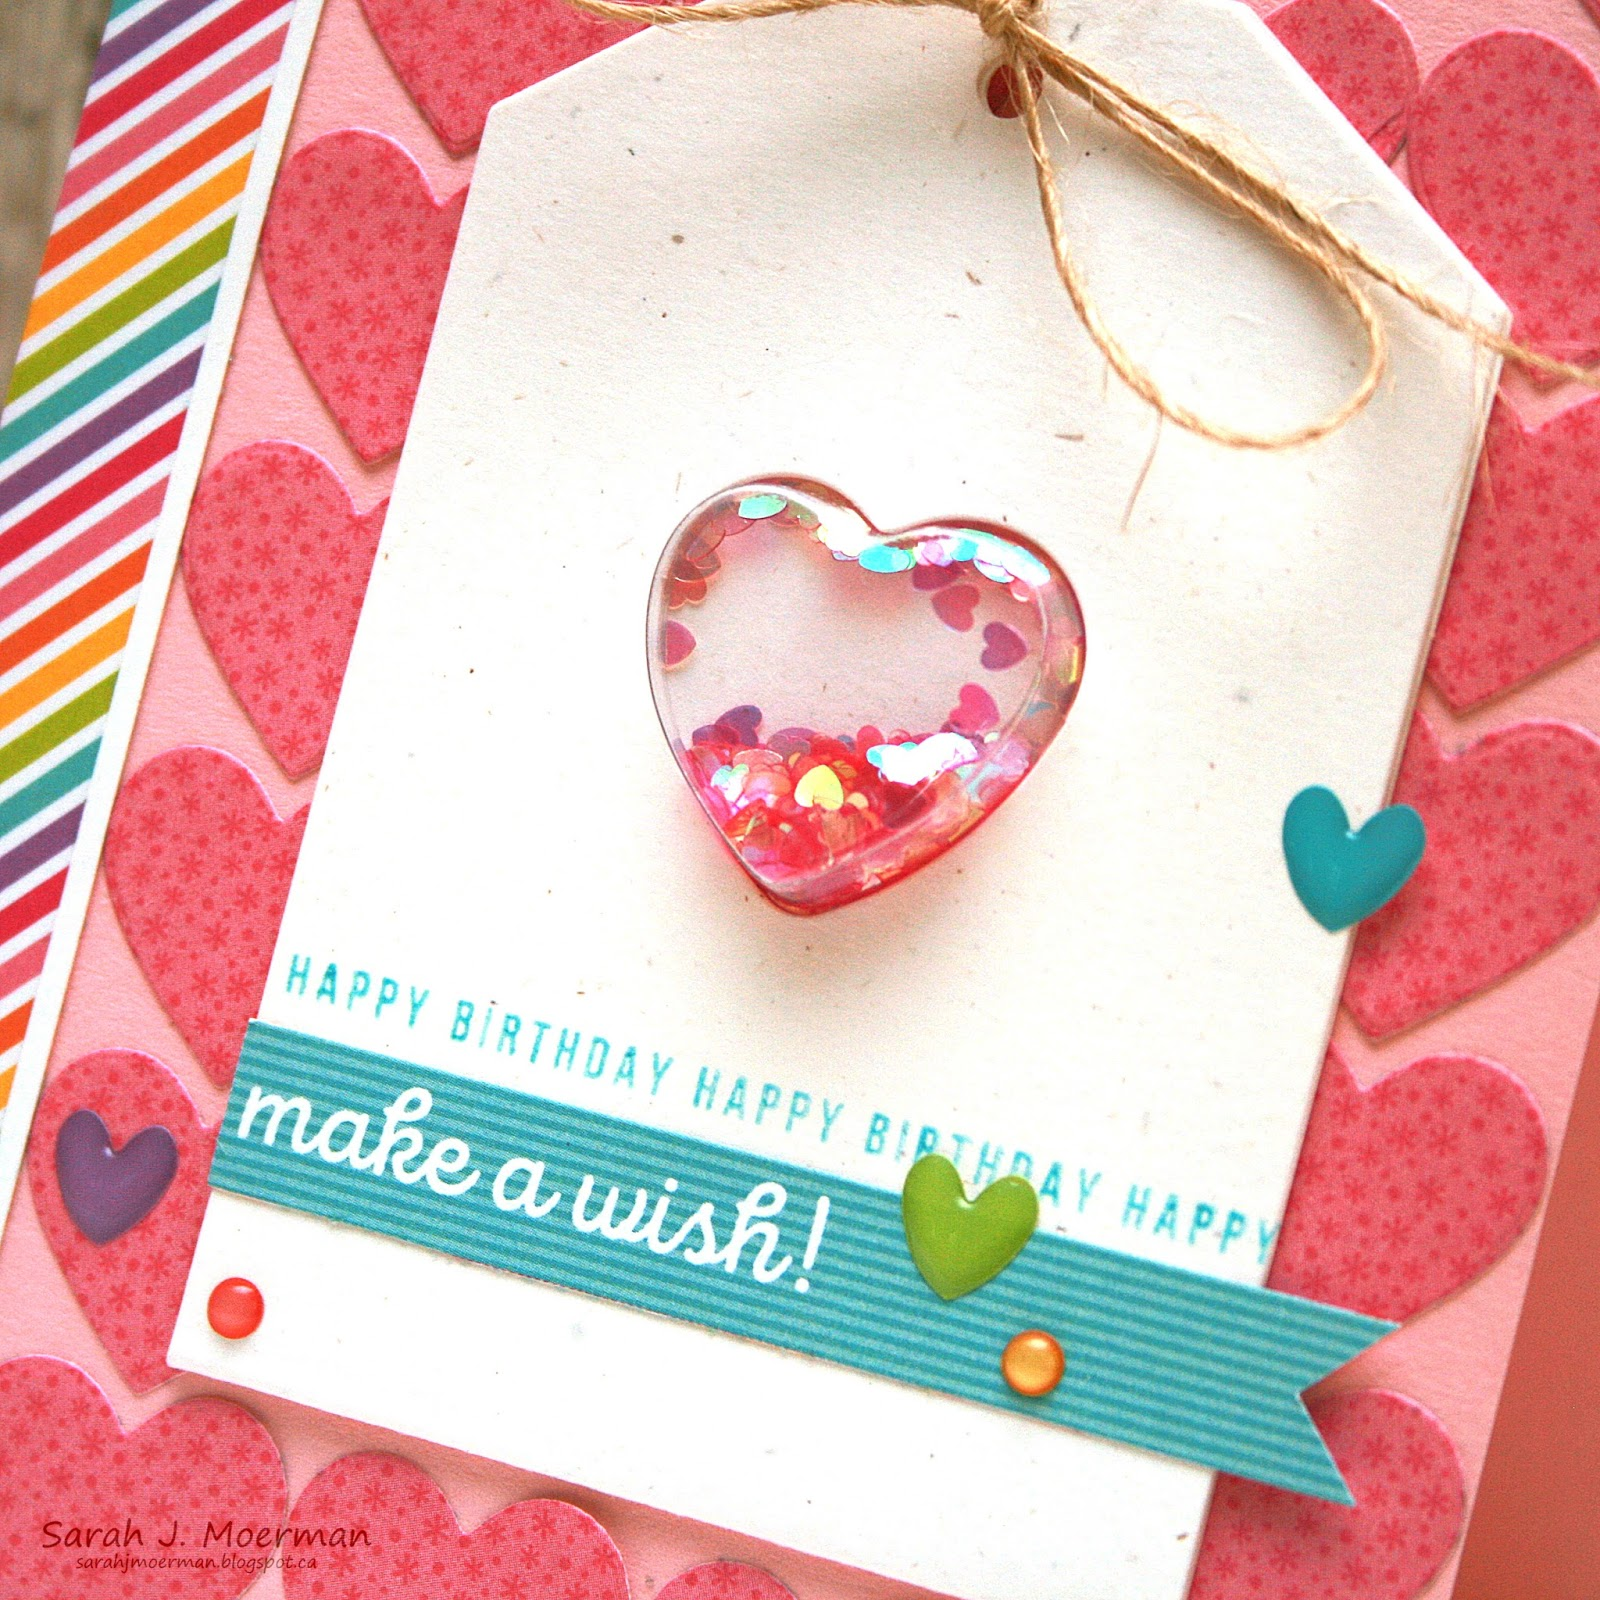 My impressions sss september card kit reveal make a wish shaker the jillibean small heart shaped shaker and matching small heart shaker tag made creating this shaker card so easy all i had to do was pop the heart into kristyandbryce Choice Image